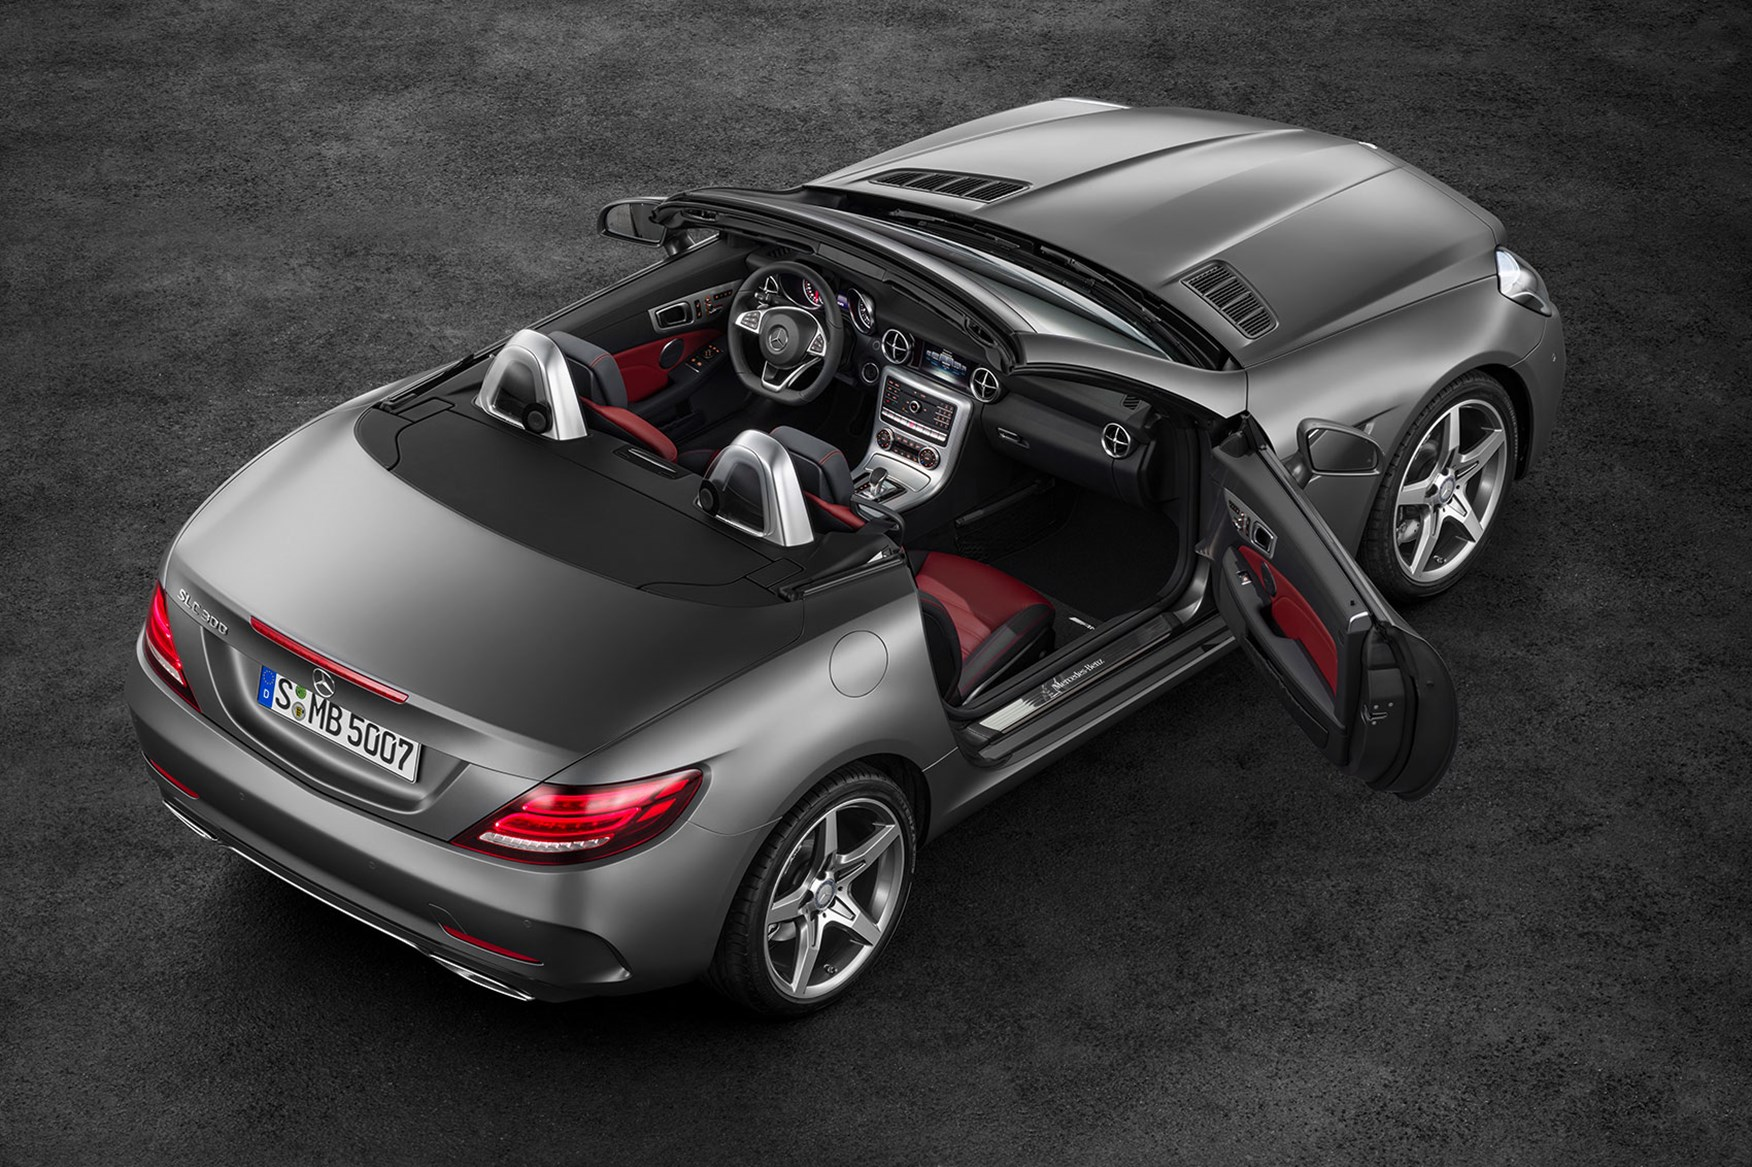 Mercedes Slc Revealed A New Name And A New Face For Slk In 2016